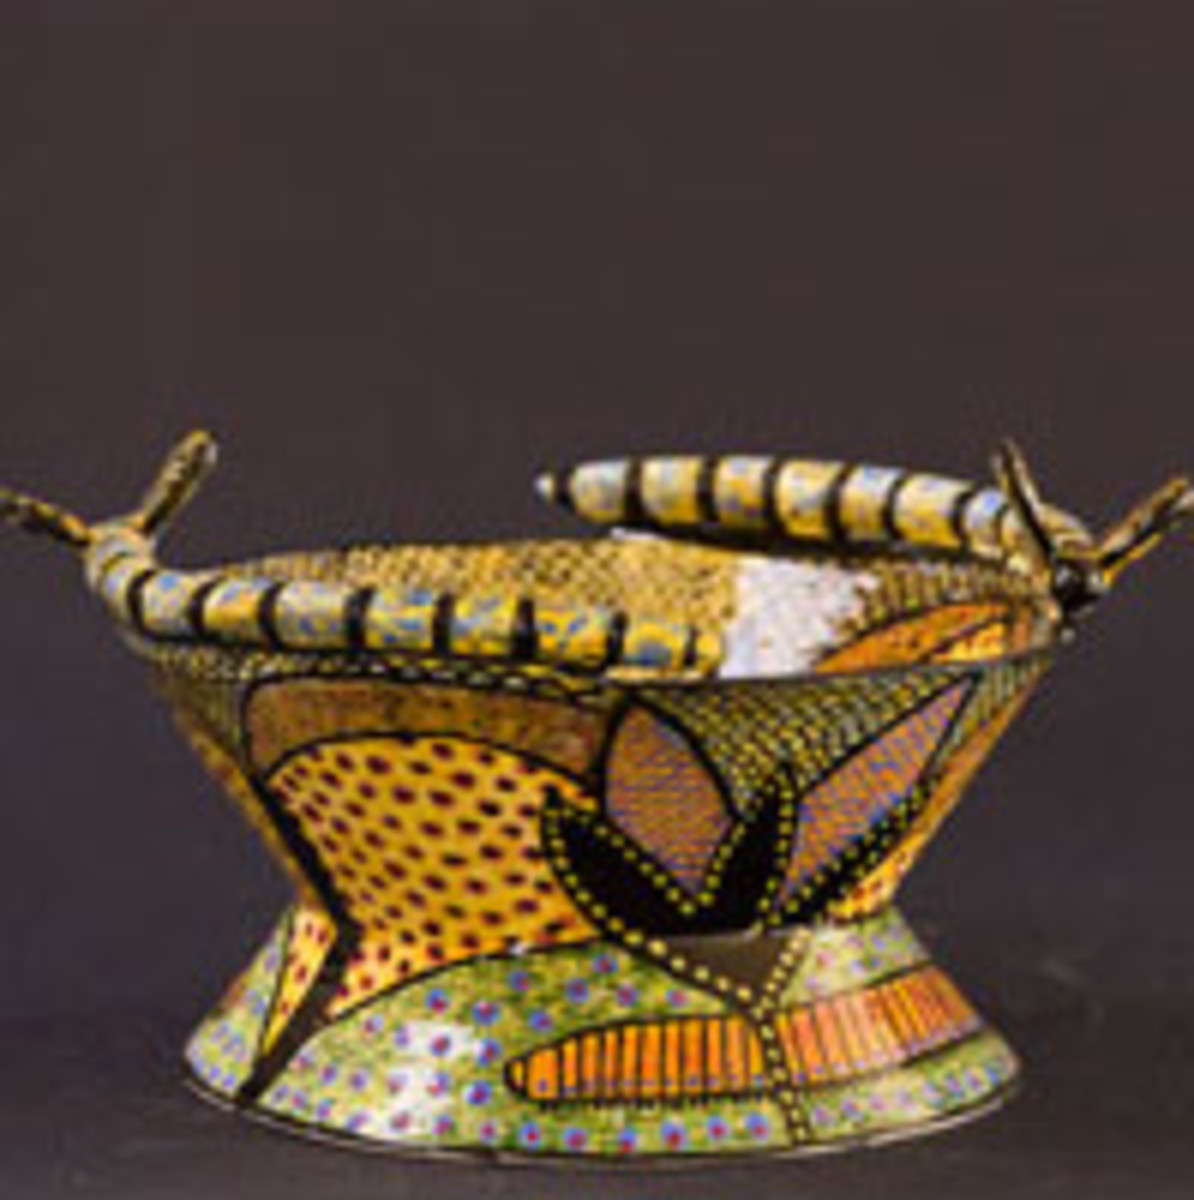 Vibrant Zulu ceramic ware and domestic cultural decorative tradition